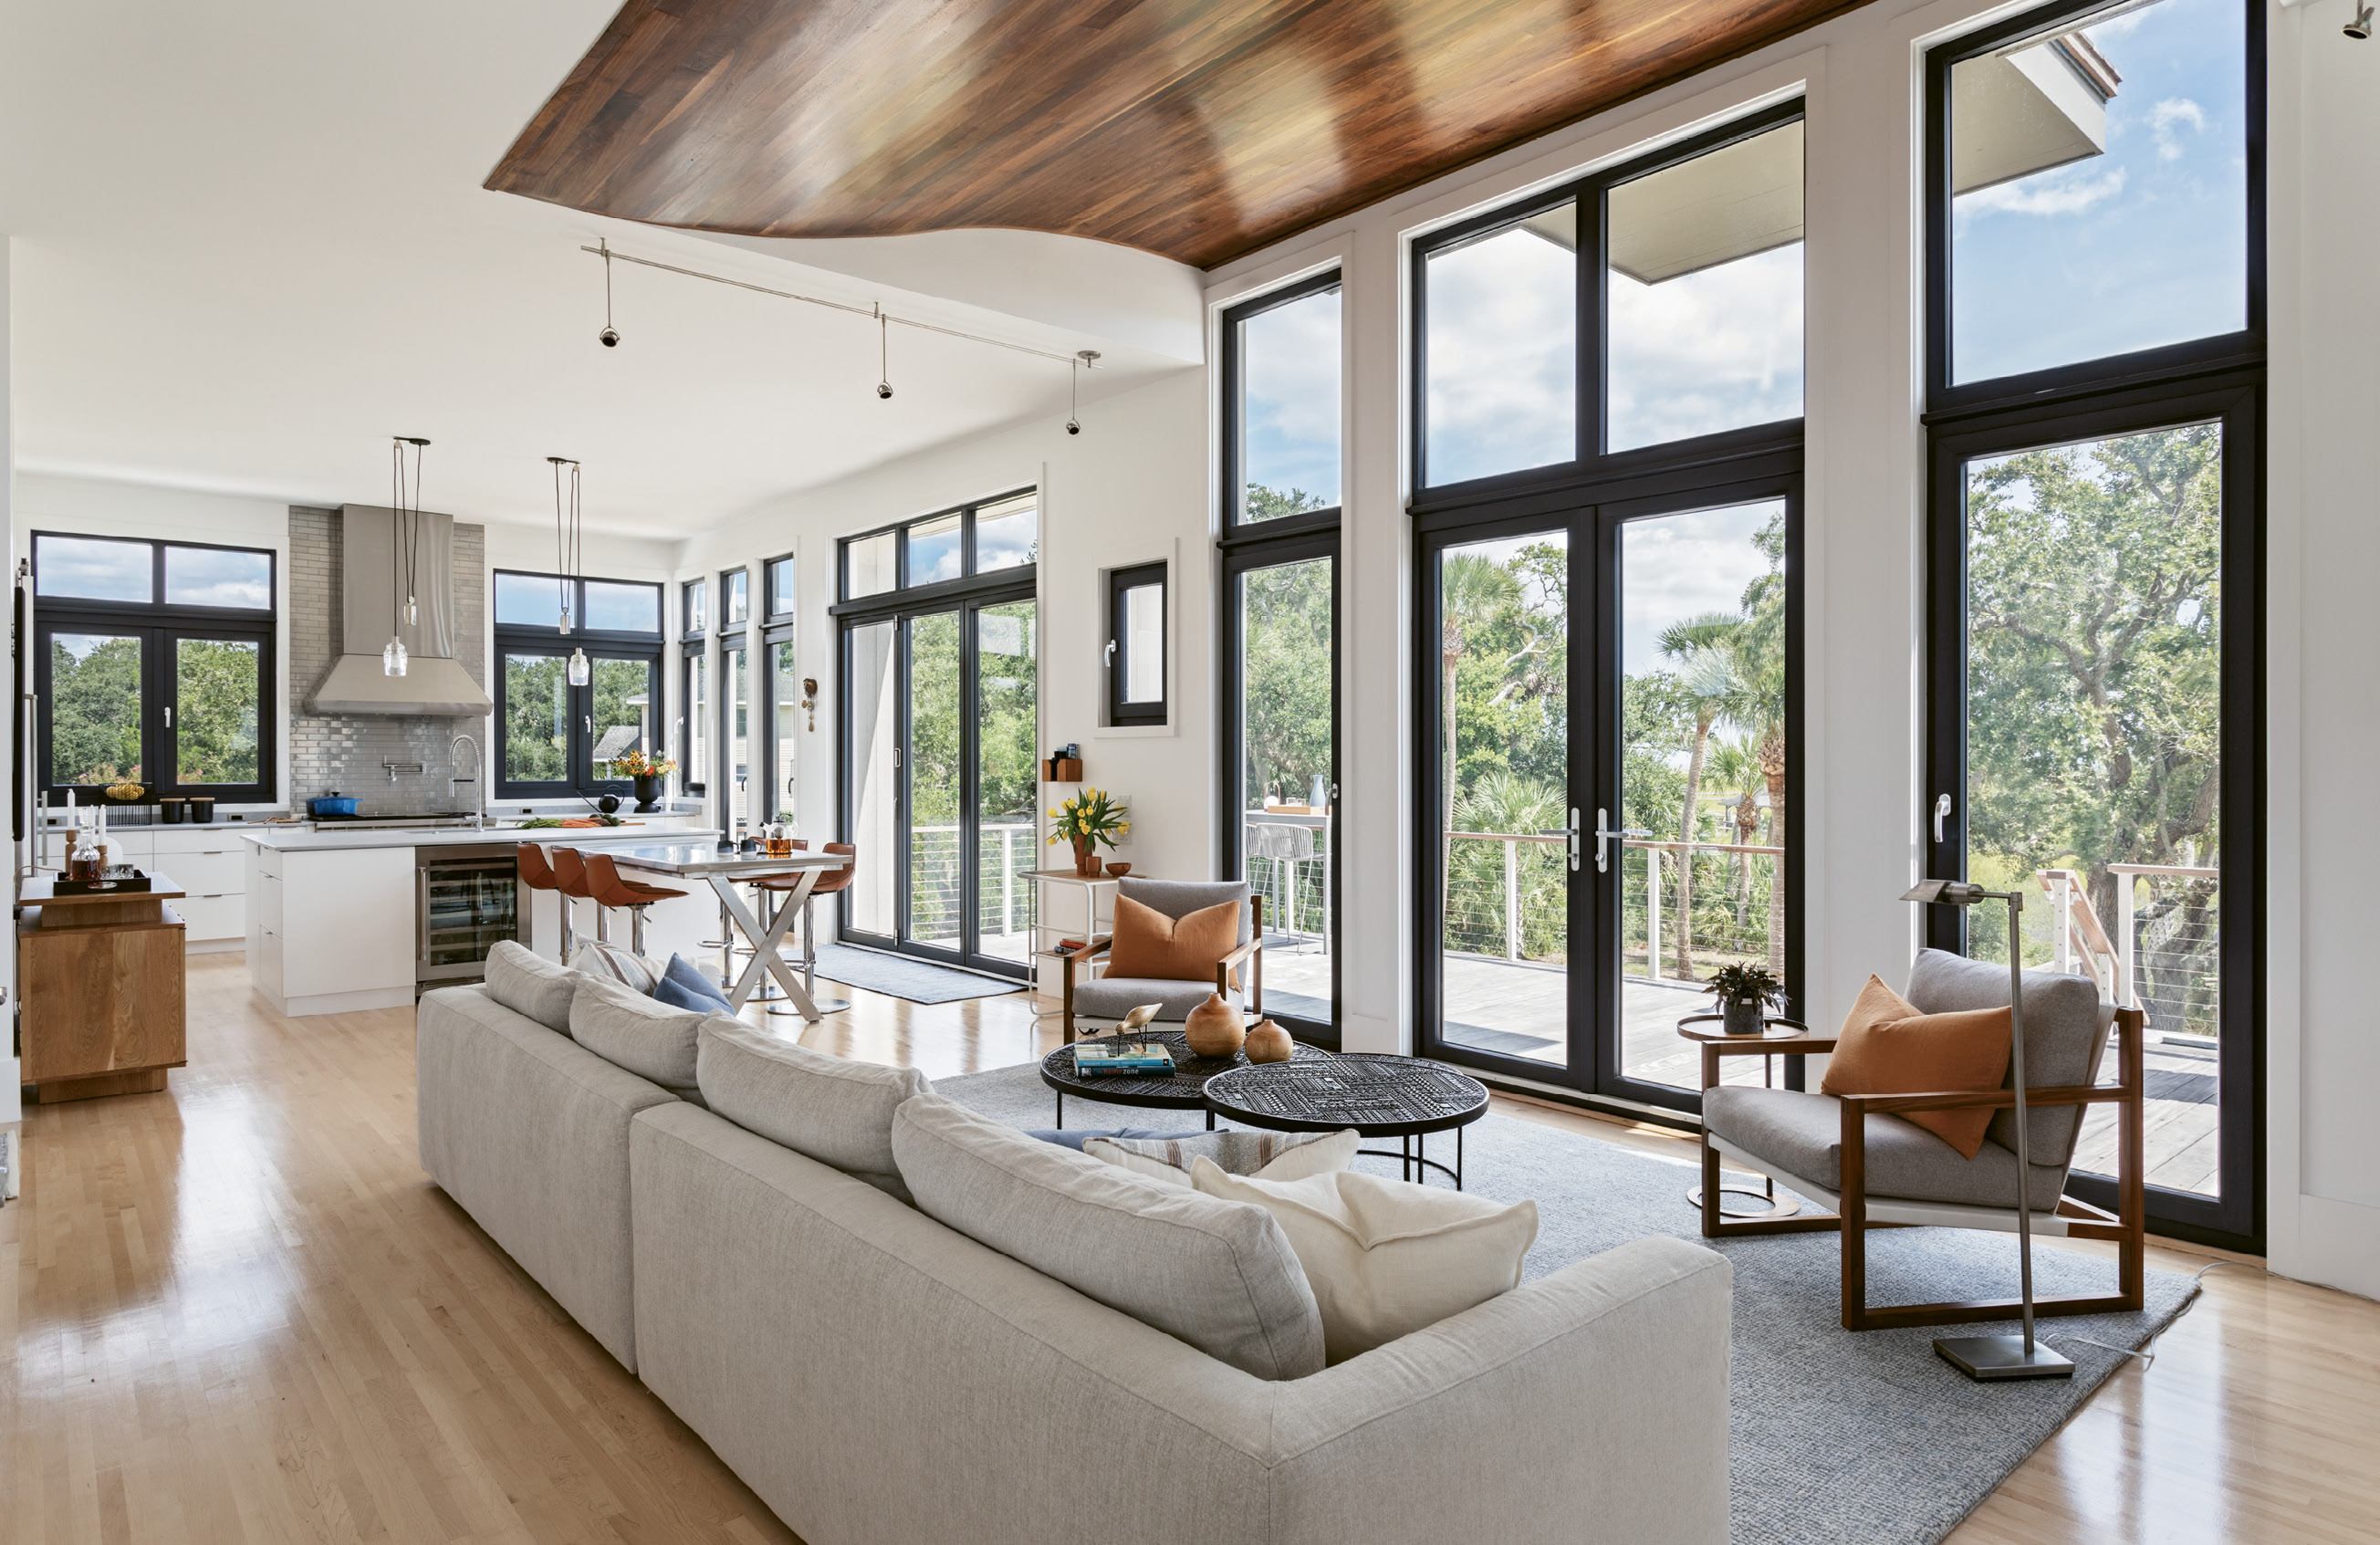 LINES OF SIGHT: Custom Henselstone German windows and glass doors open out from the main living space onto a spacious deck. In the elongated lounge area, low-slung contemporary European furniture with unobtrusive styling helps keep the focus on the outdoors.